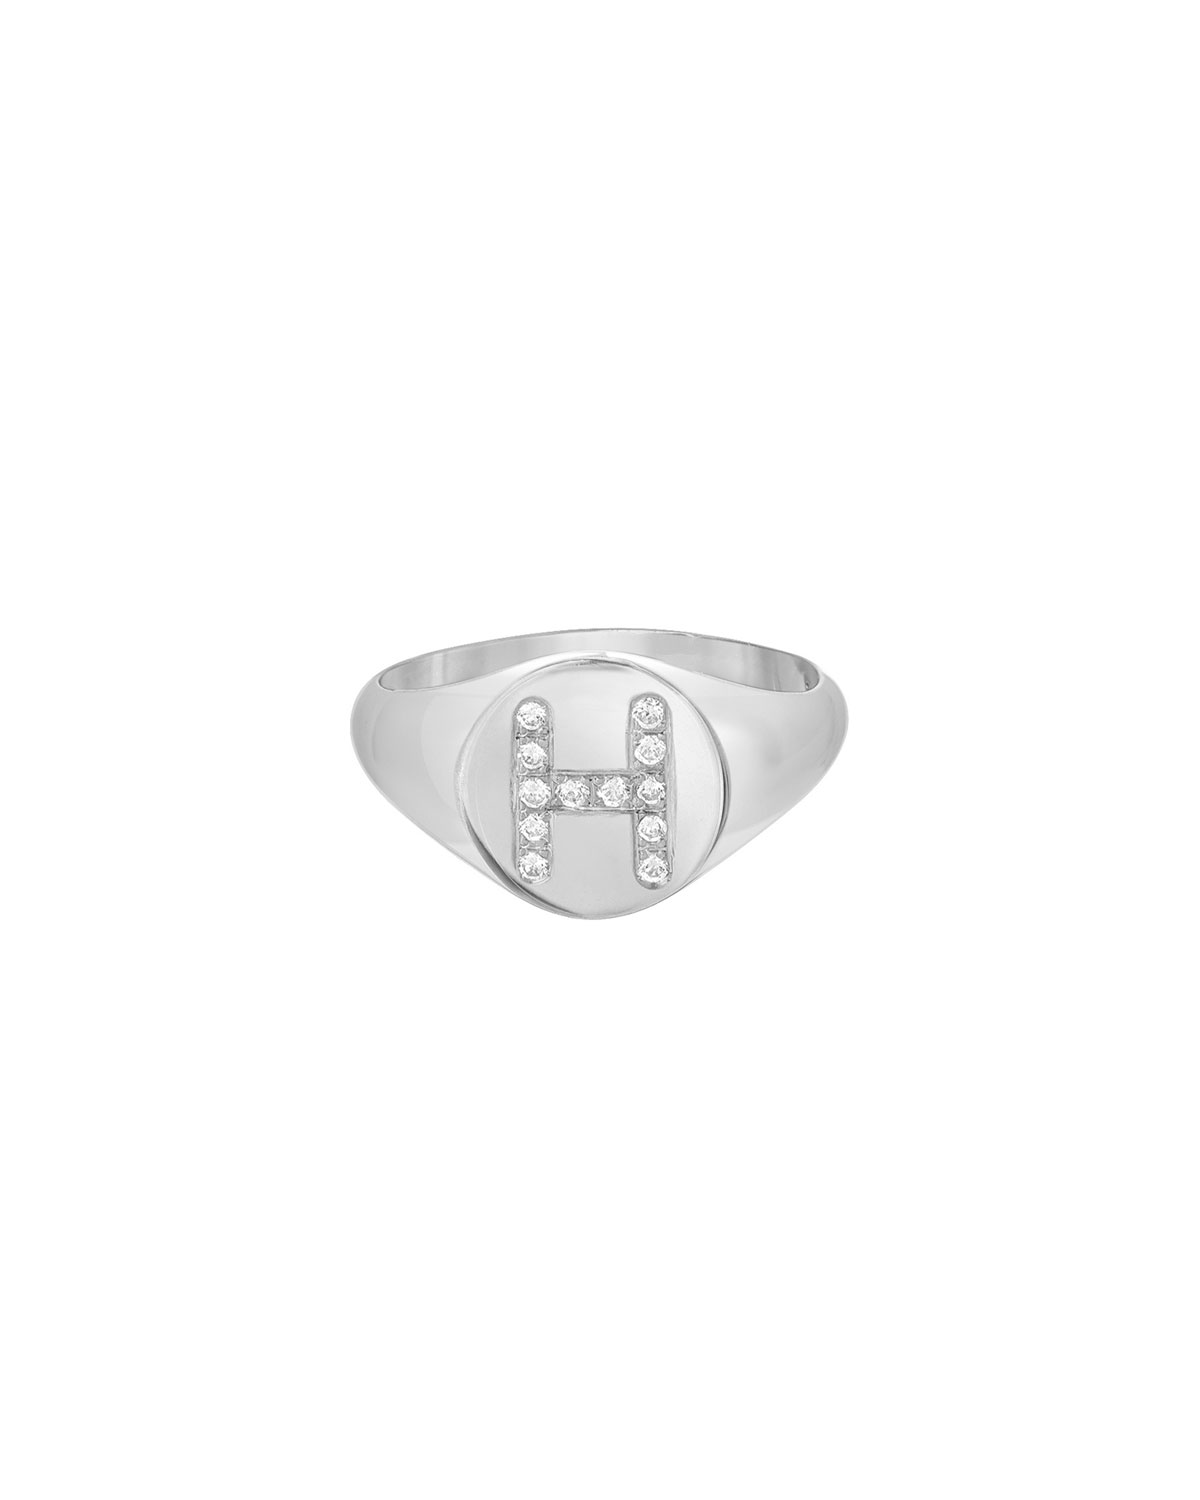 ZOE LEV JEWELRY Small Personalized Diamond Initial Signet Ring, 14K White Gold in Silver